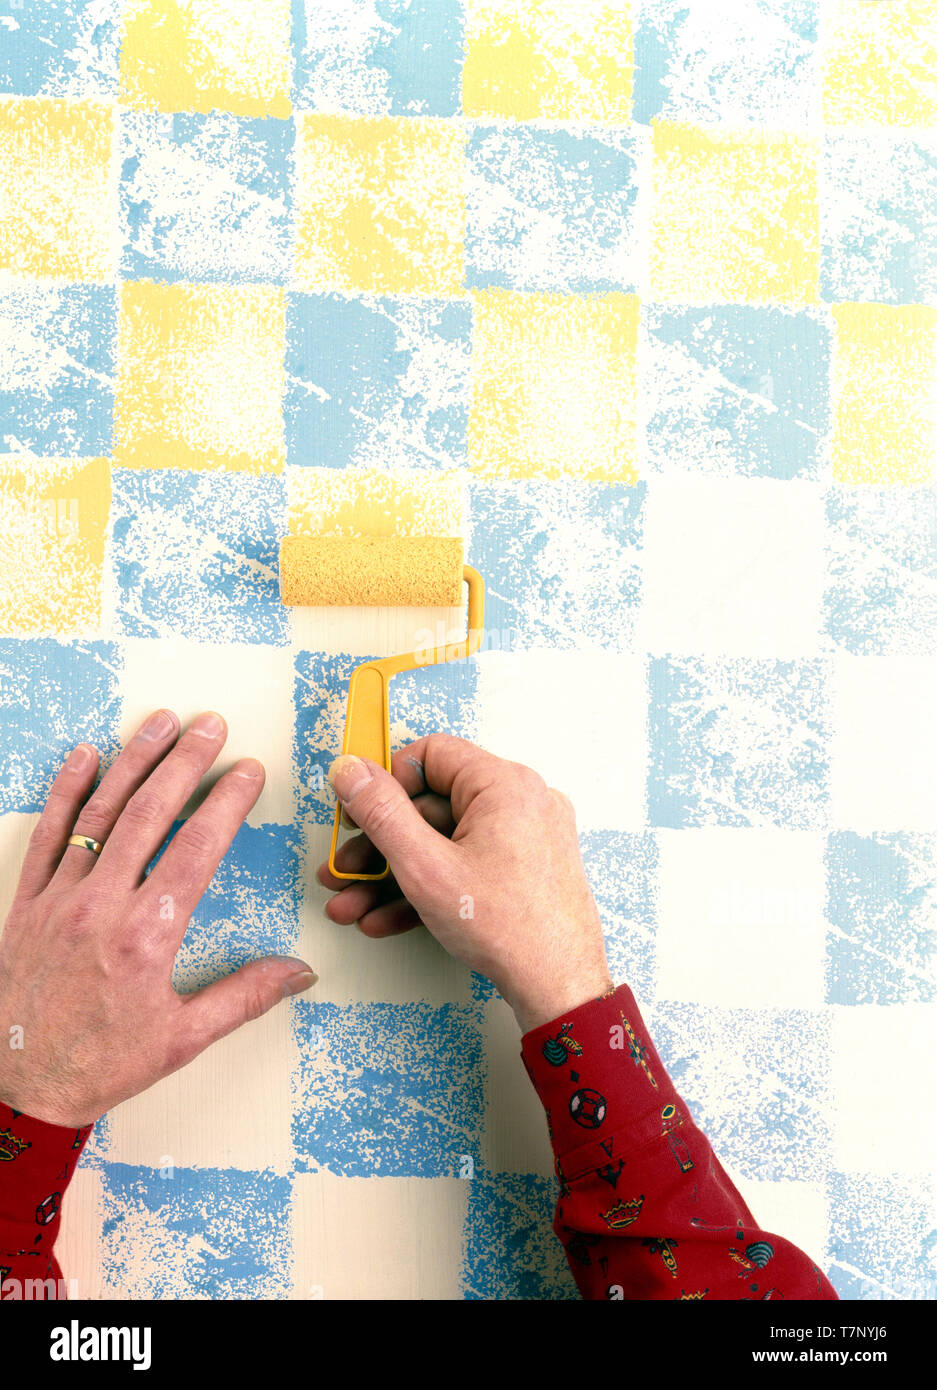 Hand using roller to paint chequerboard pattern on wall - Stock Image